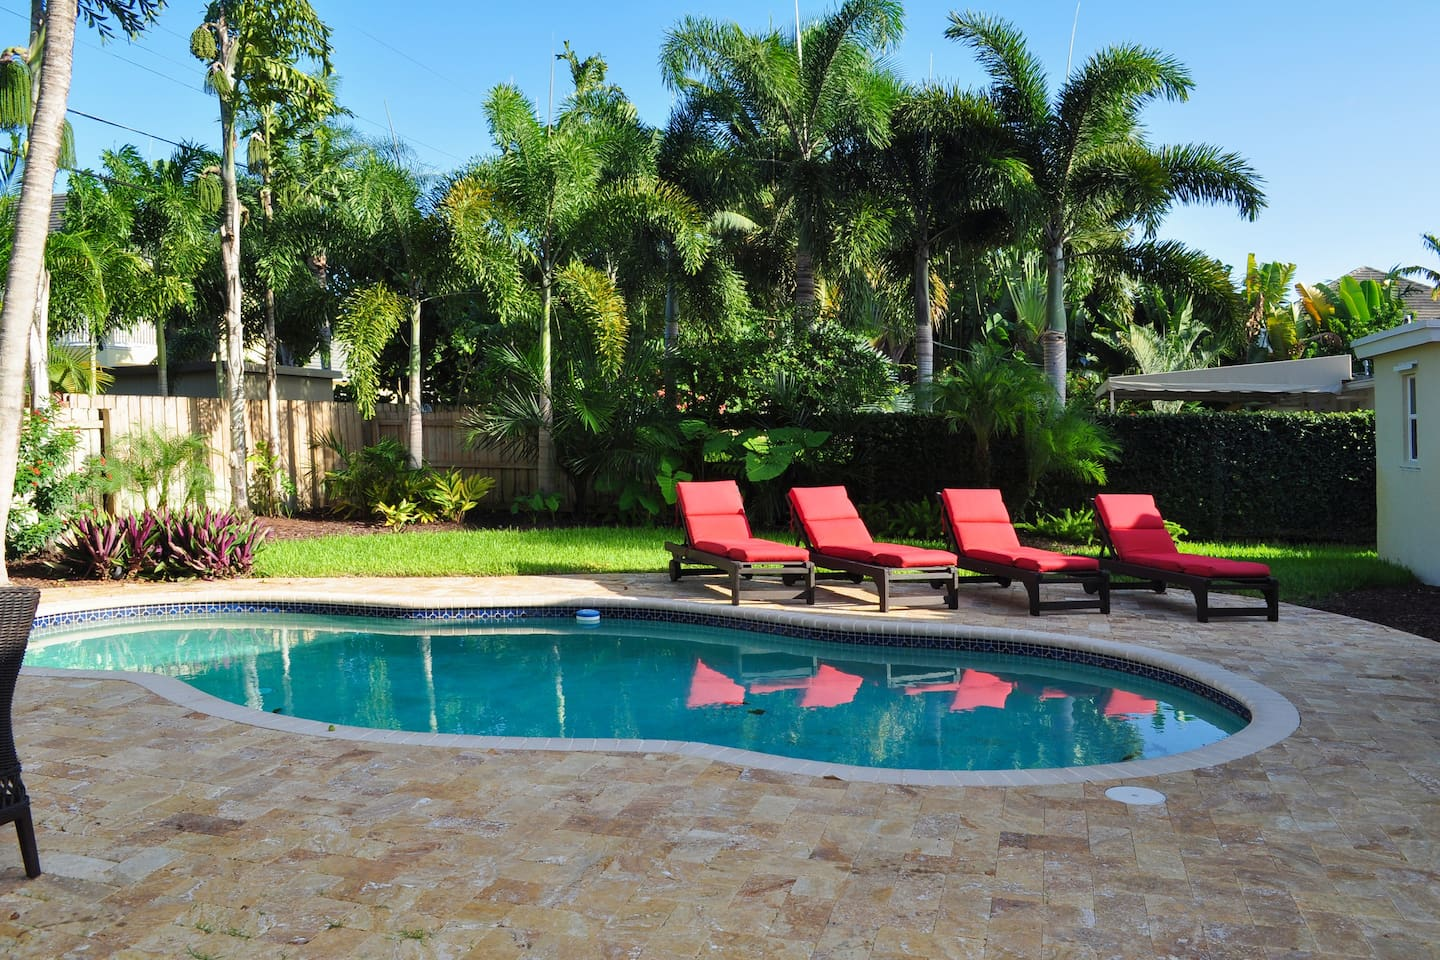 Enjoy a heated pool surrounded by lush landscaping.